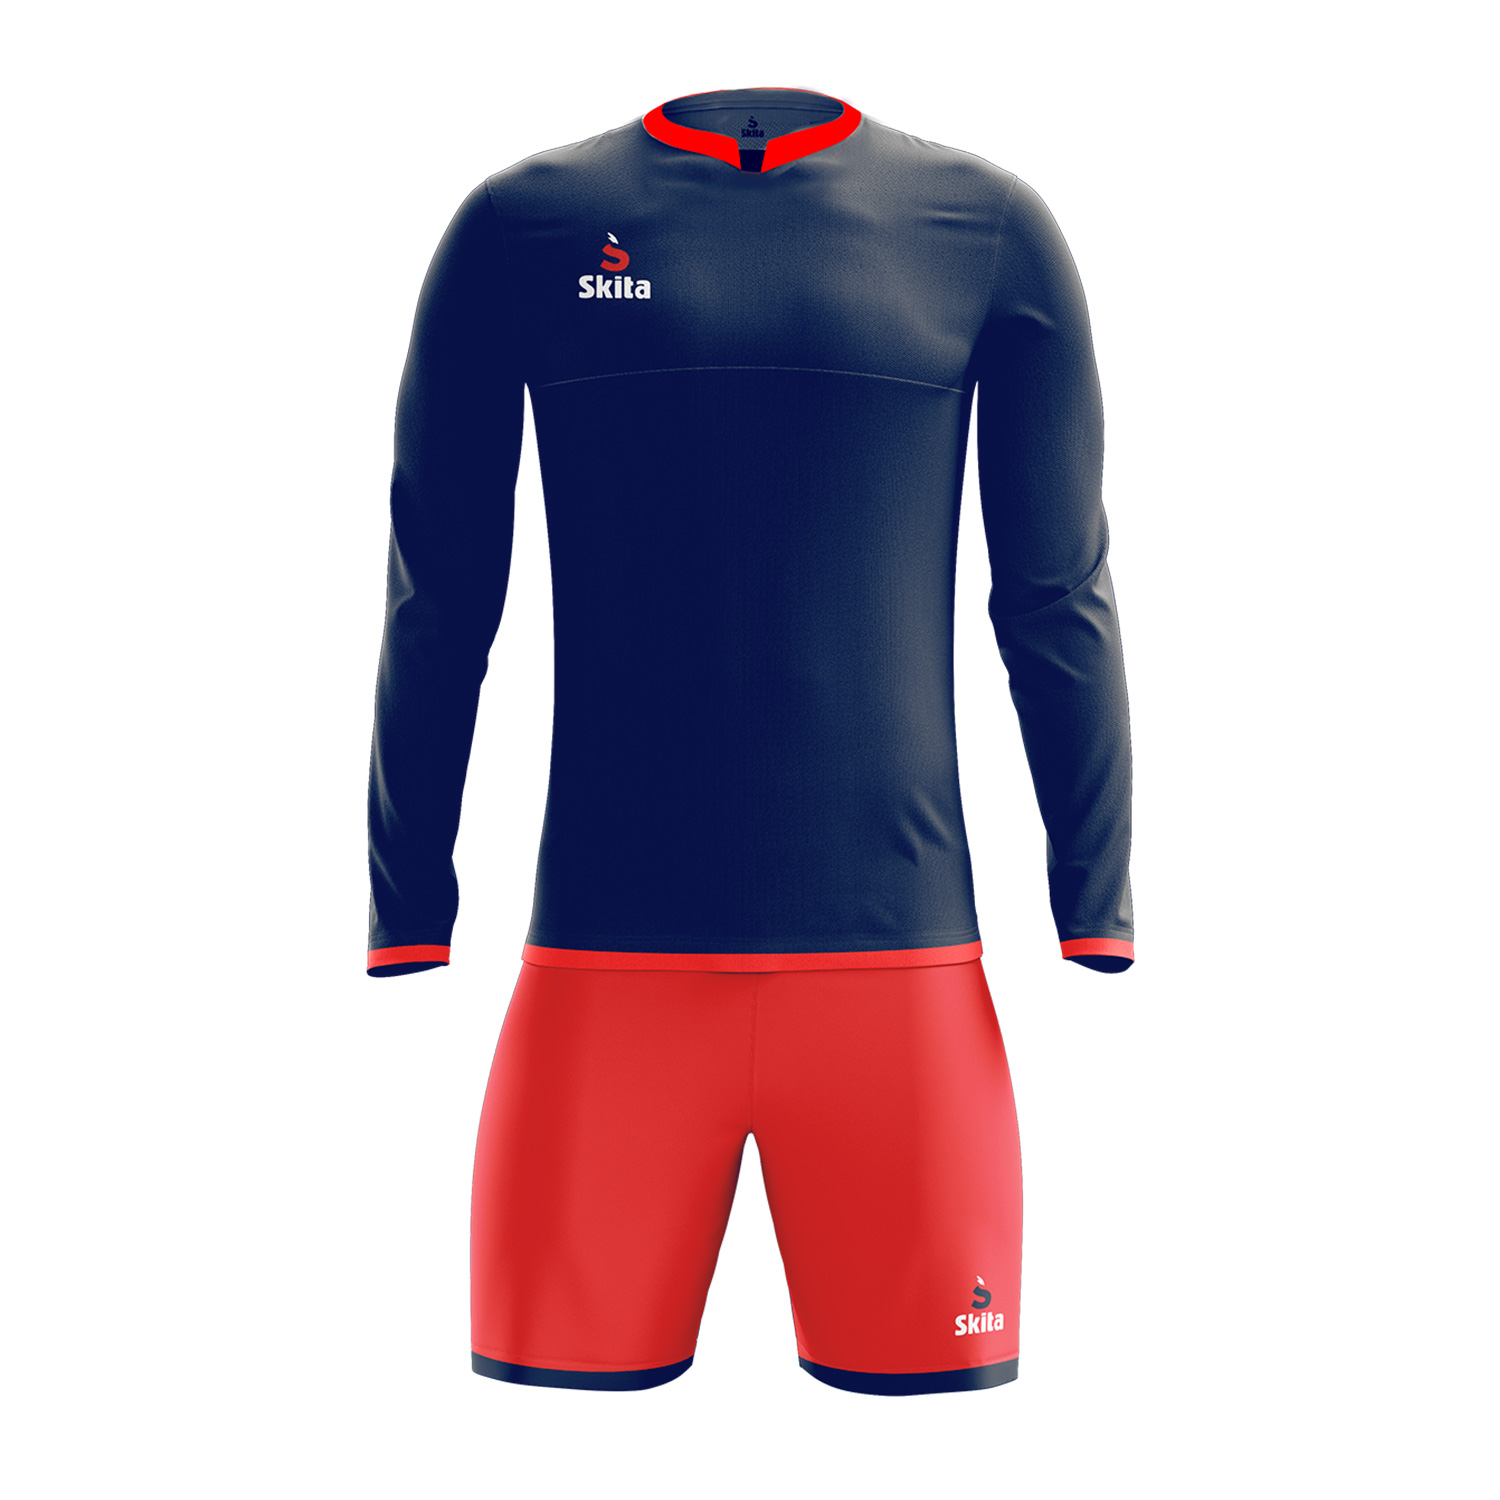 Maillot short Estoril (bleu nuit/rouge)